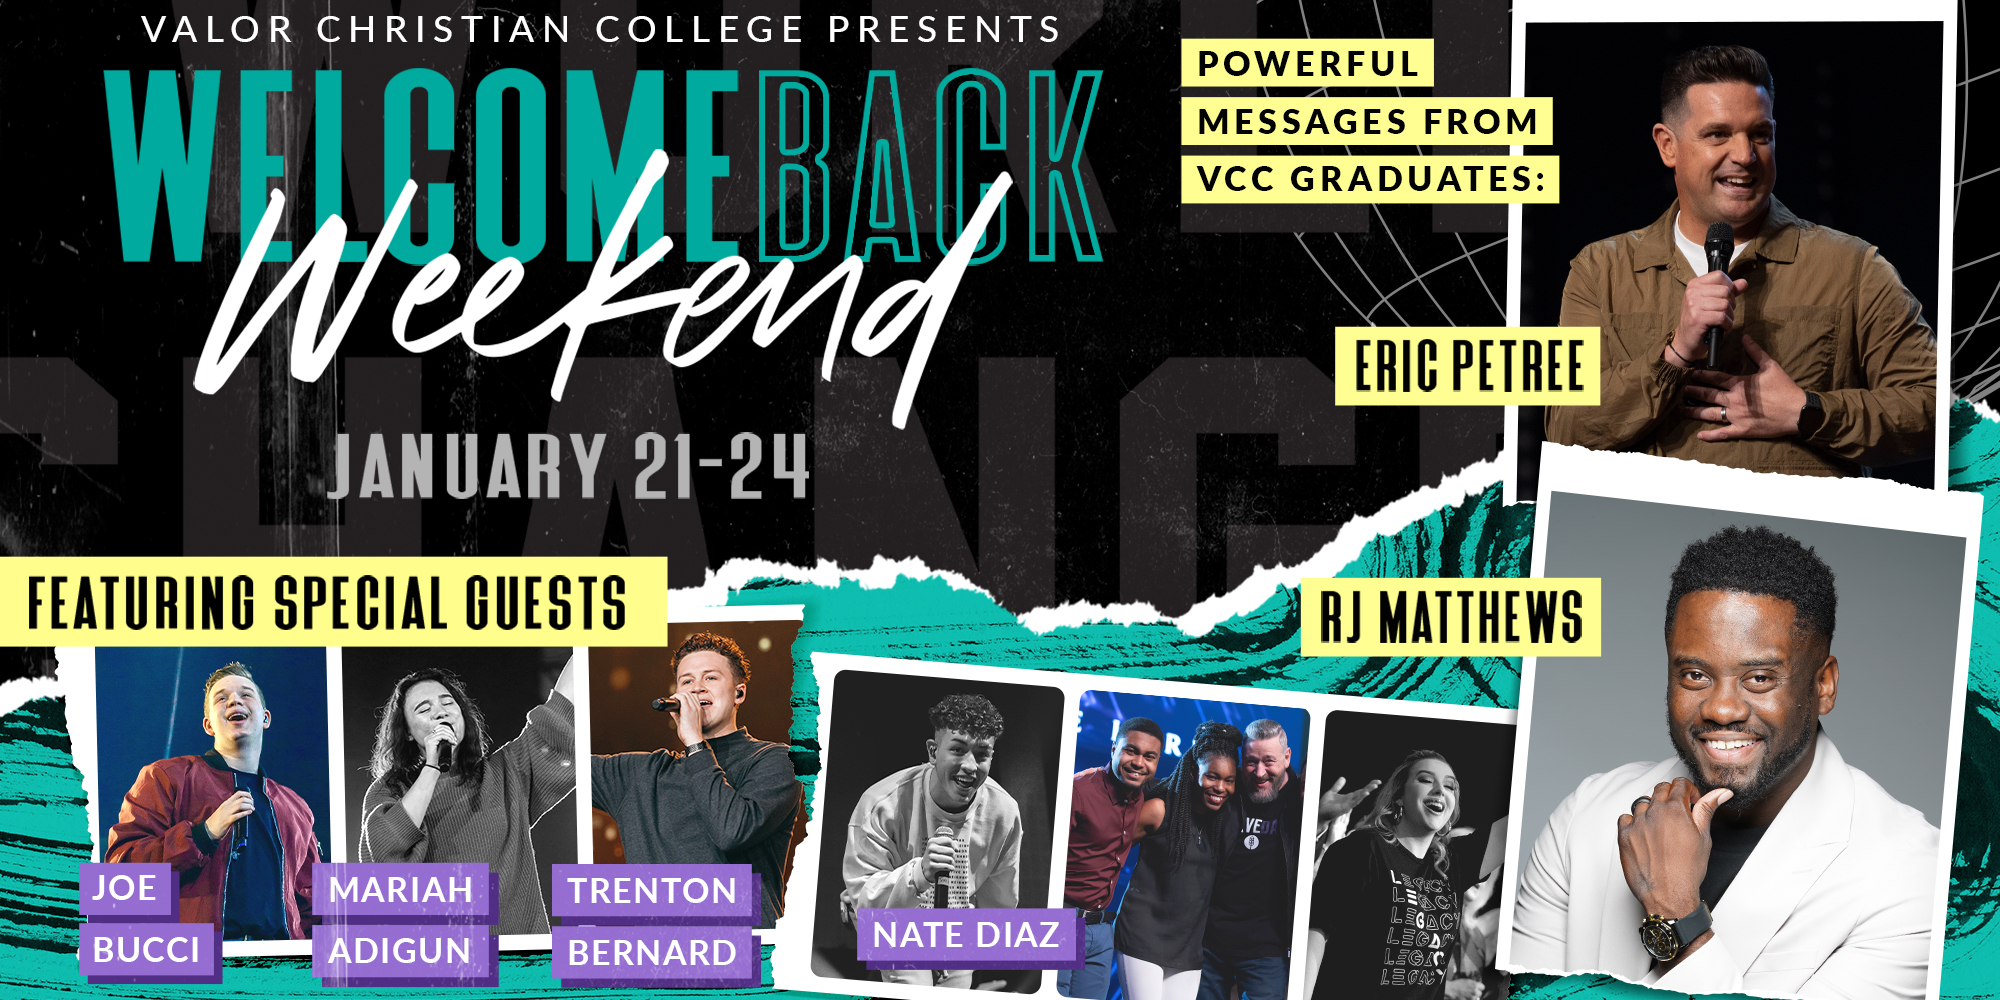 Valor Christian College Presents WelcomeBack Weekend January 21-24 Powerful Messages from VCC Graduates: Eric Petree and Rj Matthews Featuring Special Guests Joe Bucci, Mariah Adigun, Trenton Bernard, and Nate Diaz.